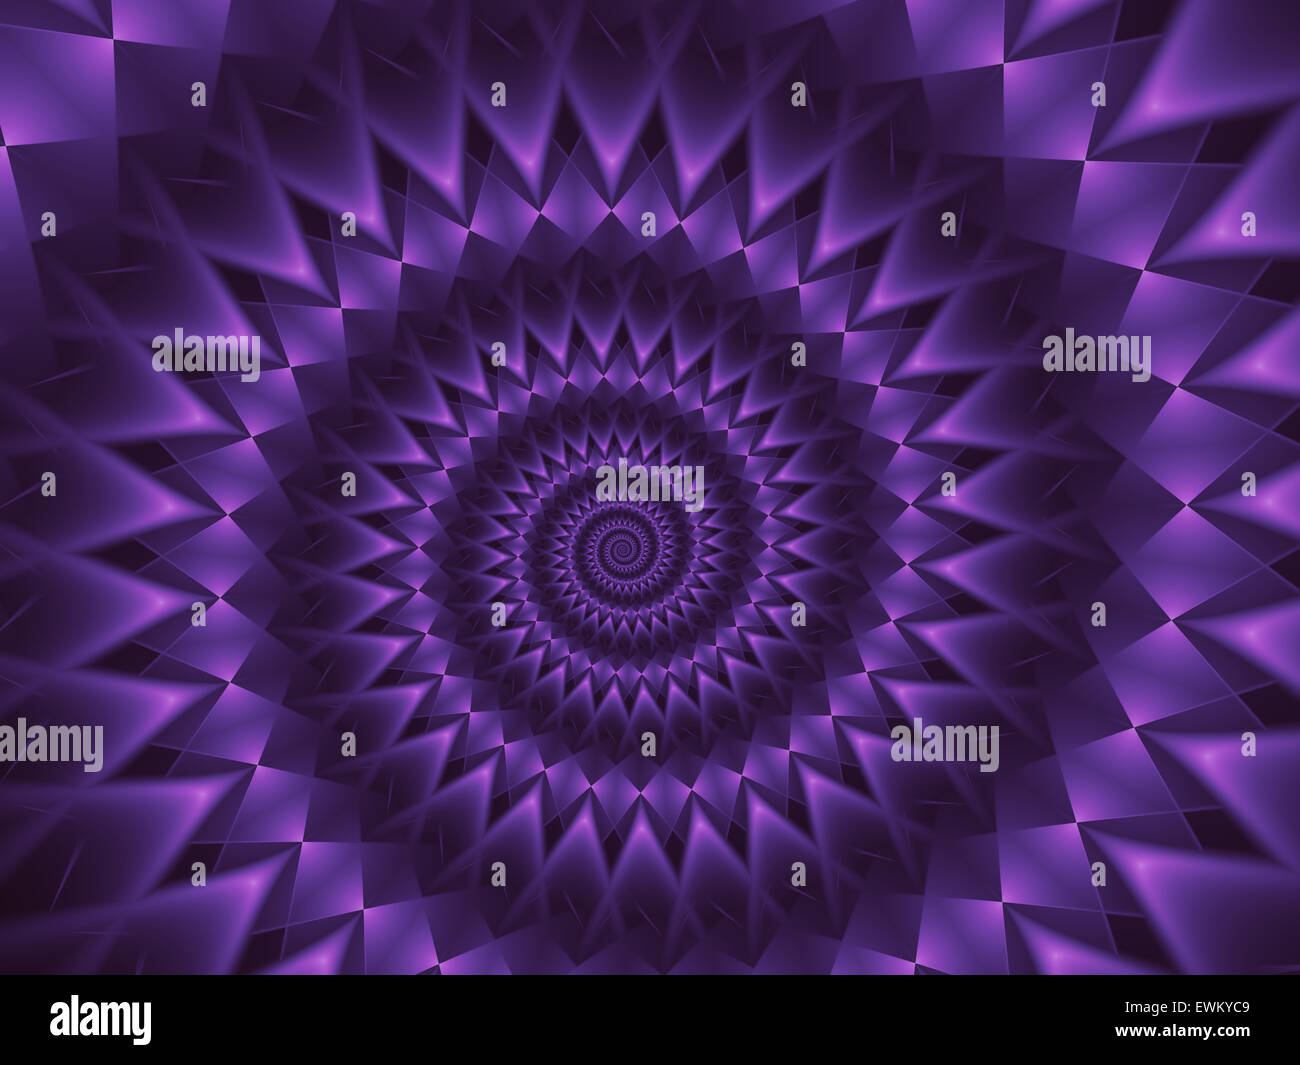 Abstract Purple Spiral Fractal Background - Stock Image